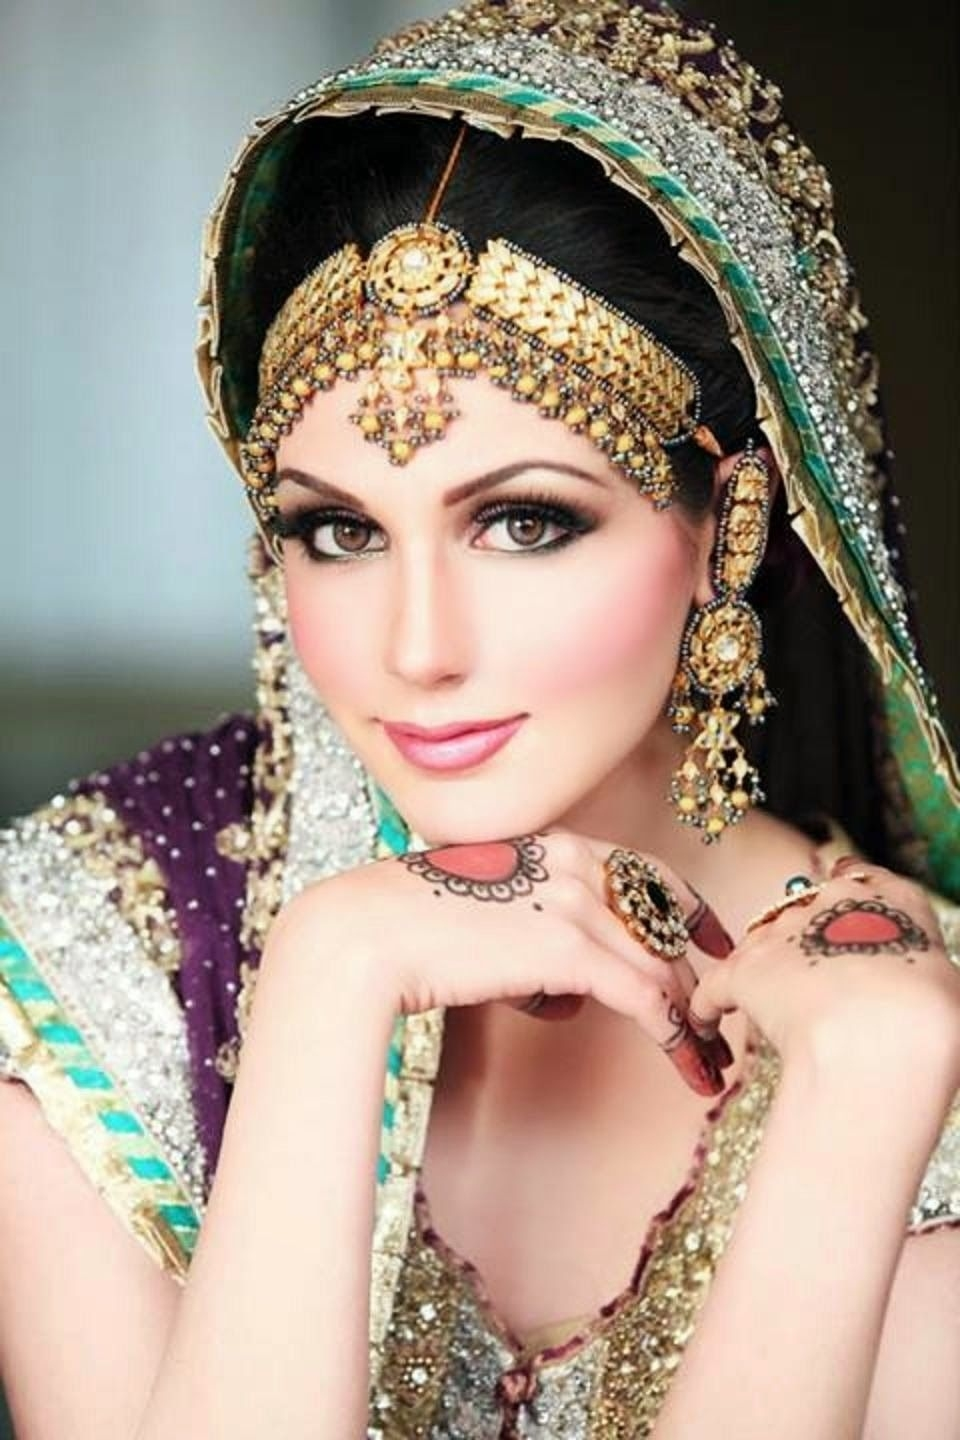 toronto makeup artist dulhan makeup ideas 2017 for s hd wallpapers free with .